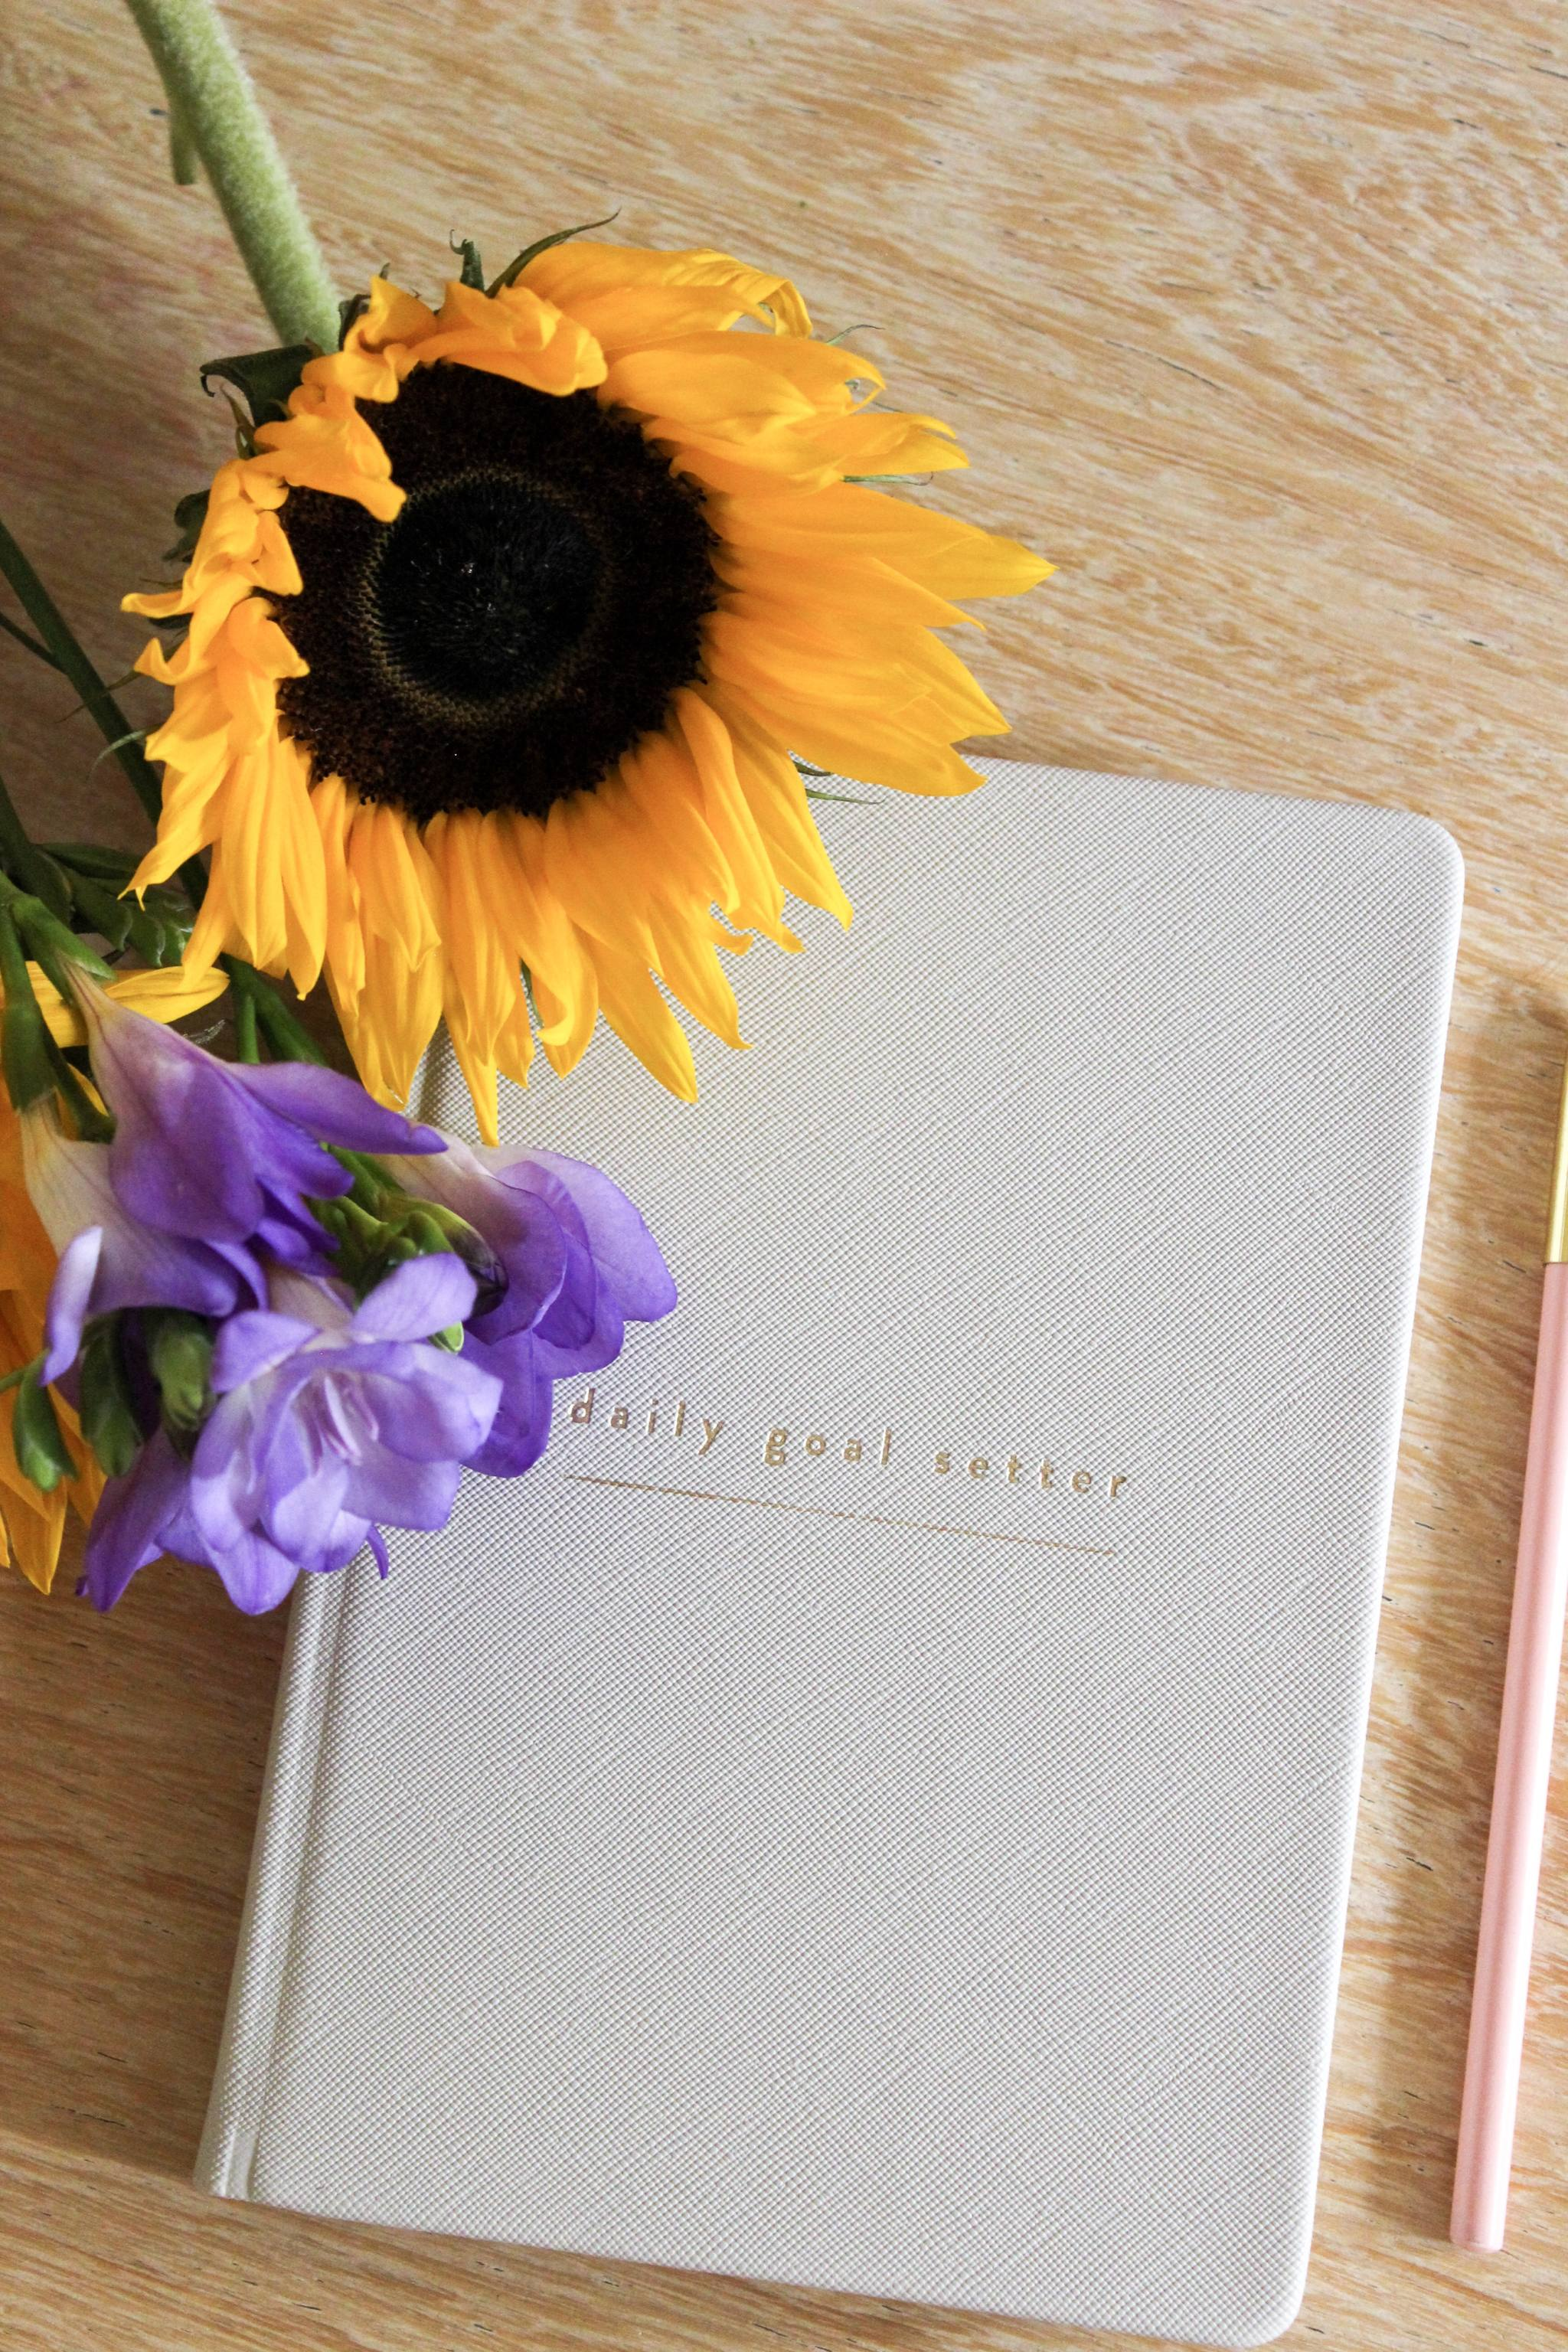 Daily Goal Setter Planner with Sunflowers and Purple Freesias